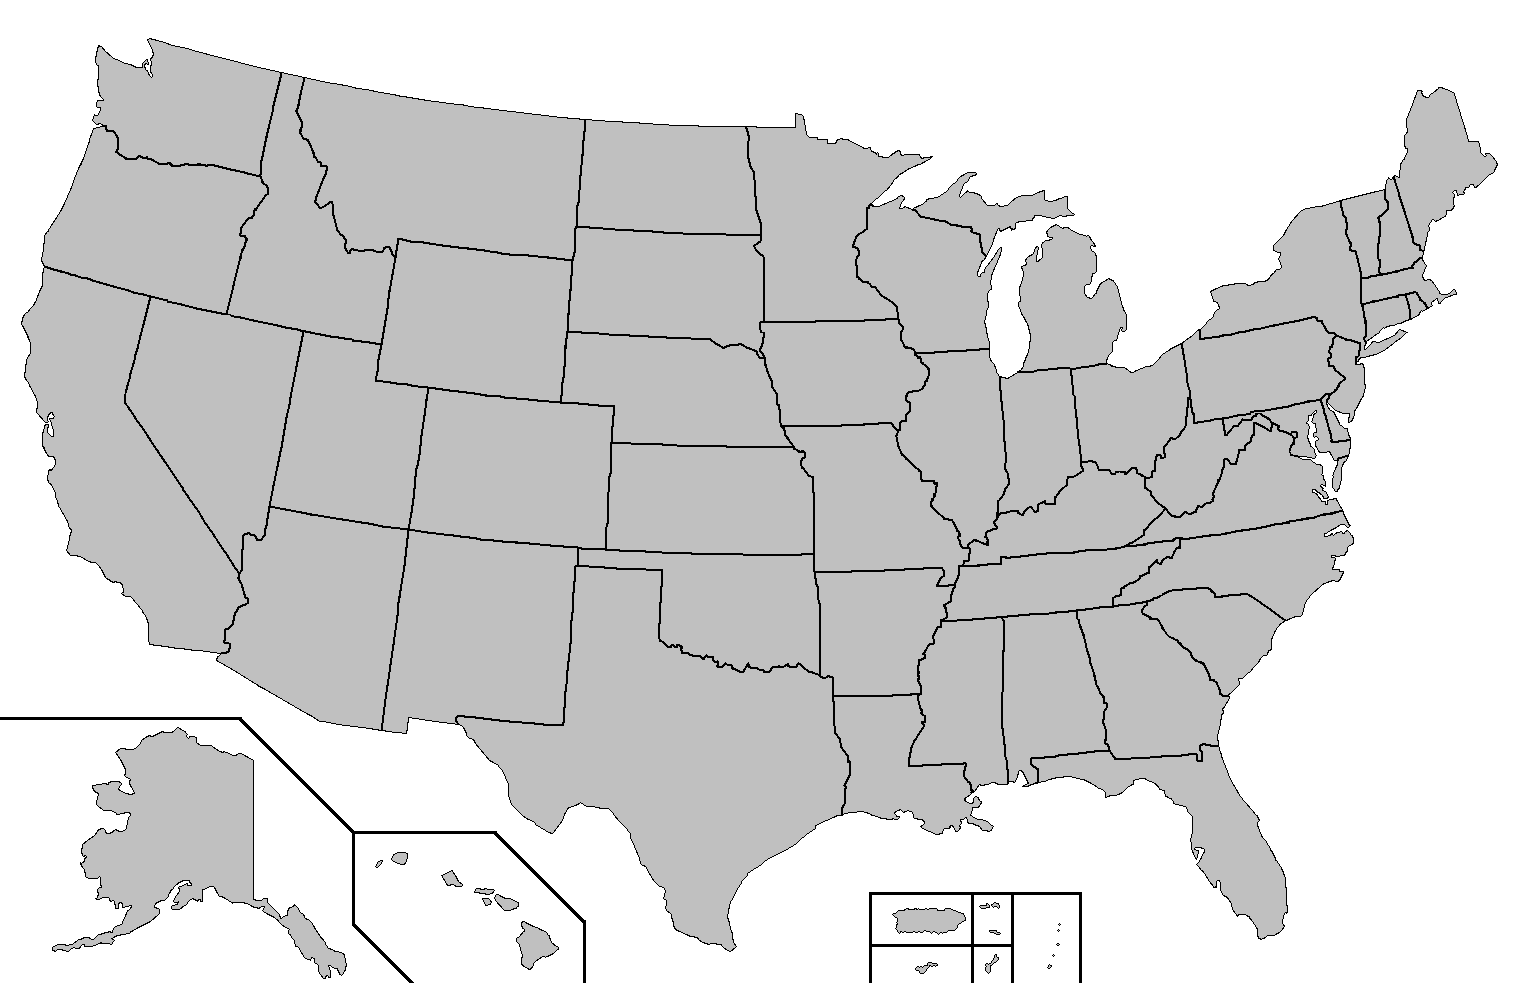 FileBlank Map Of The United StatesPNG Wikimedia Commons - Us blank state map